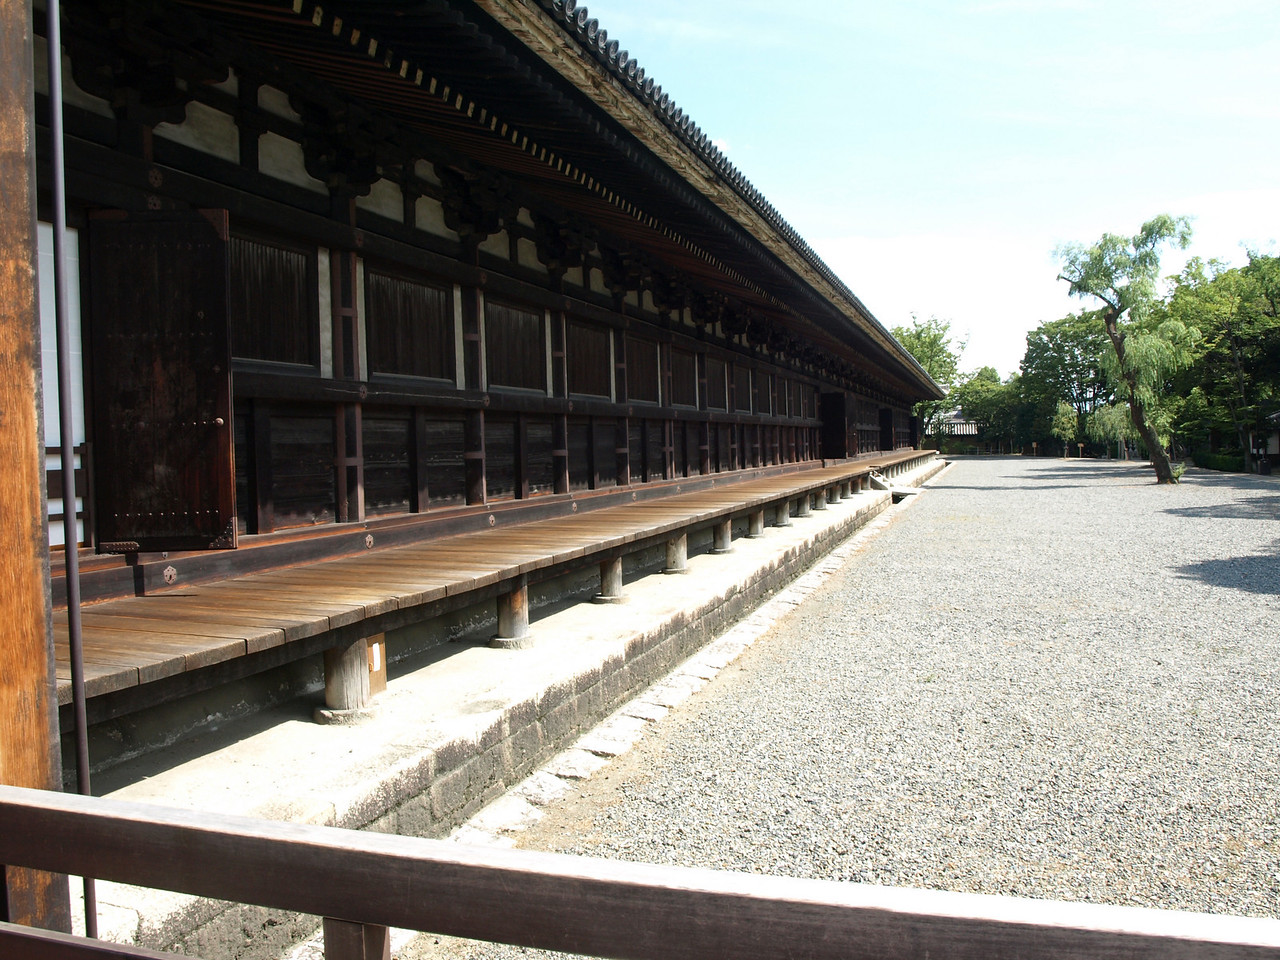 The west veranda of the Hall extends for about 390 feet (120 meters)